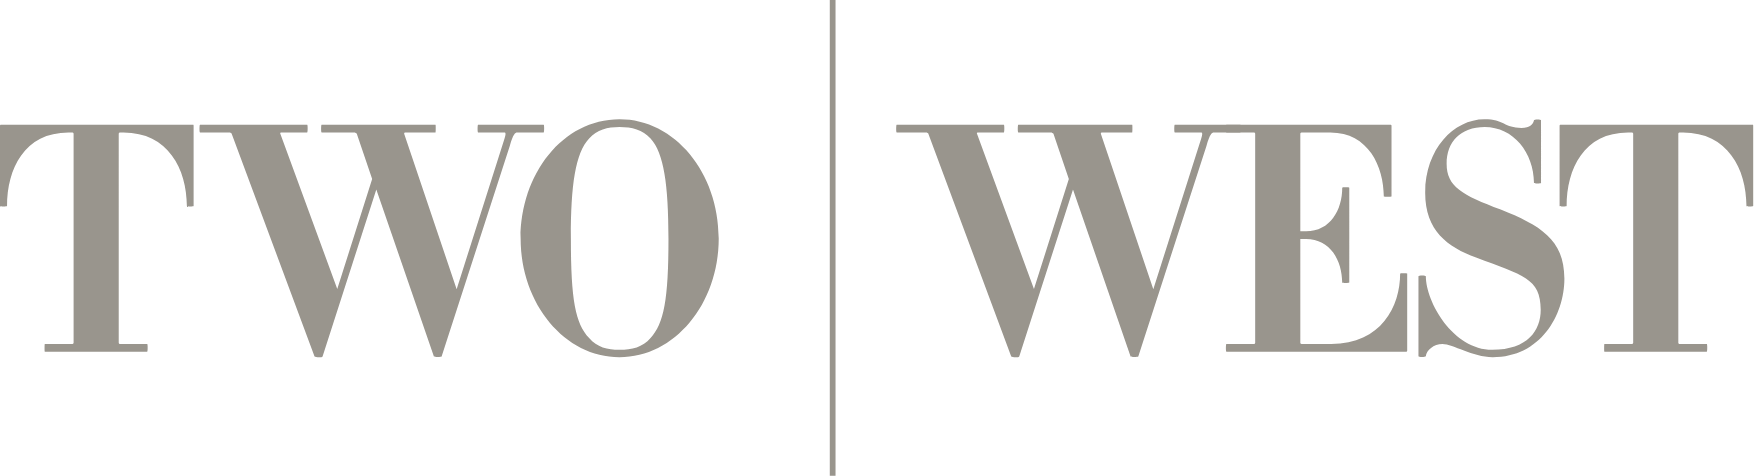 two west logo